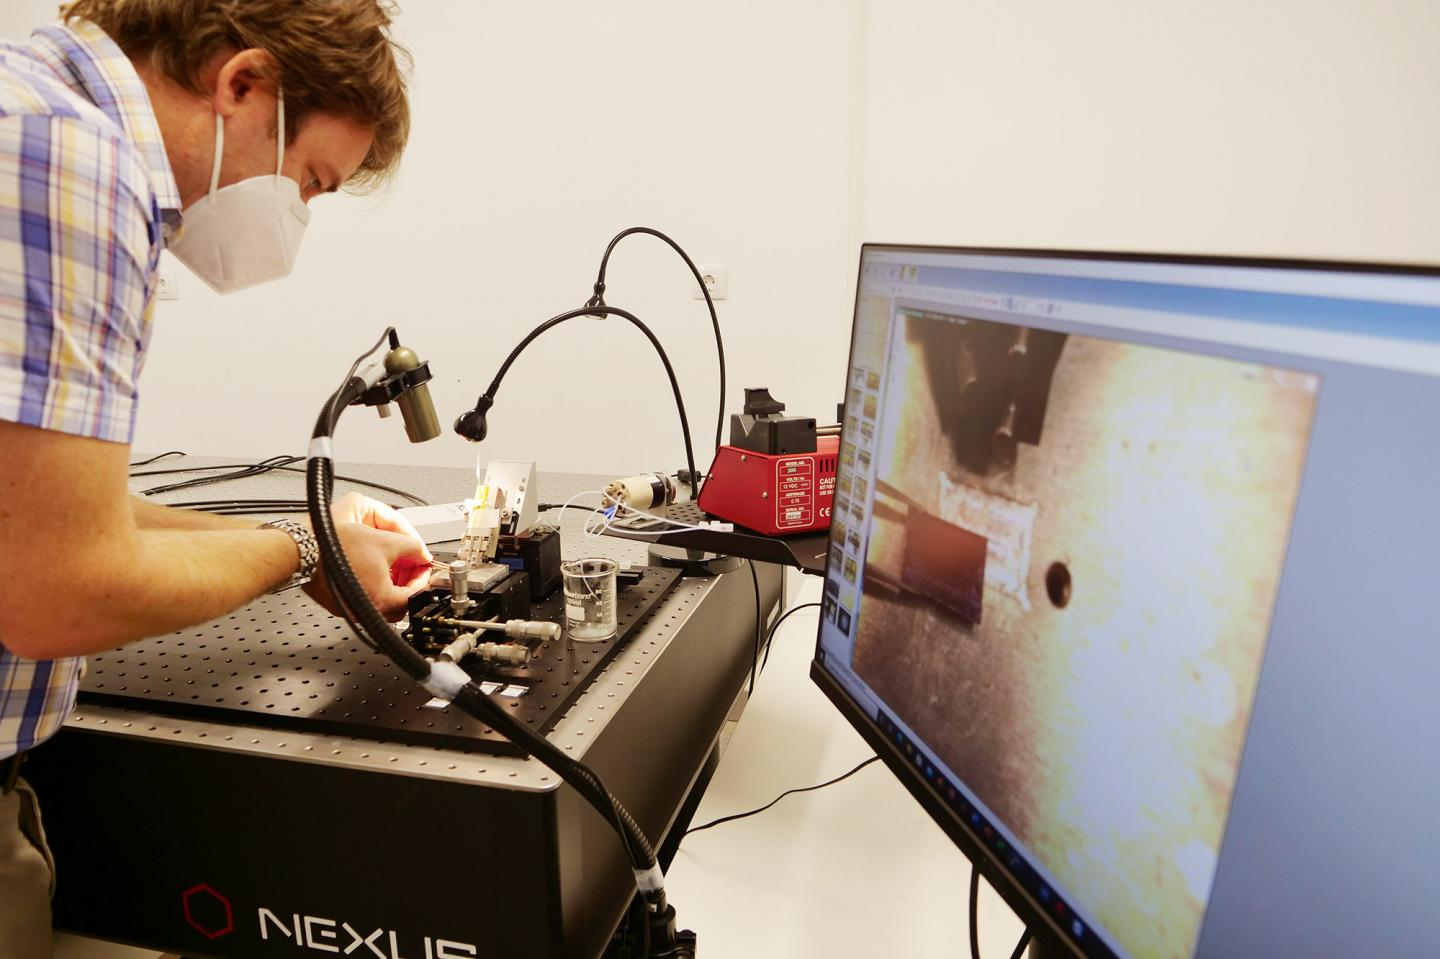 Researcher Robert Halir Working on the New System in His Laboratory BIONAND